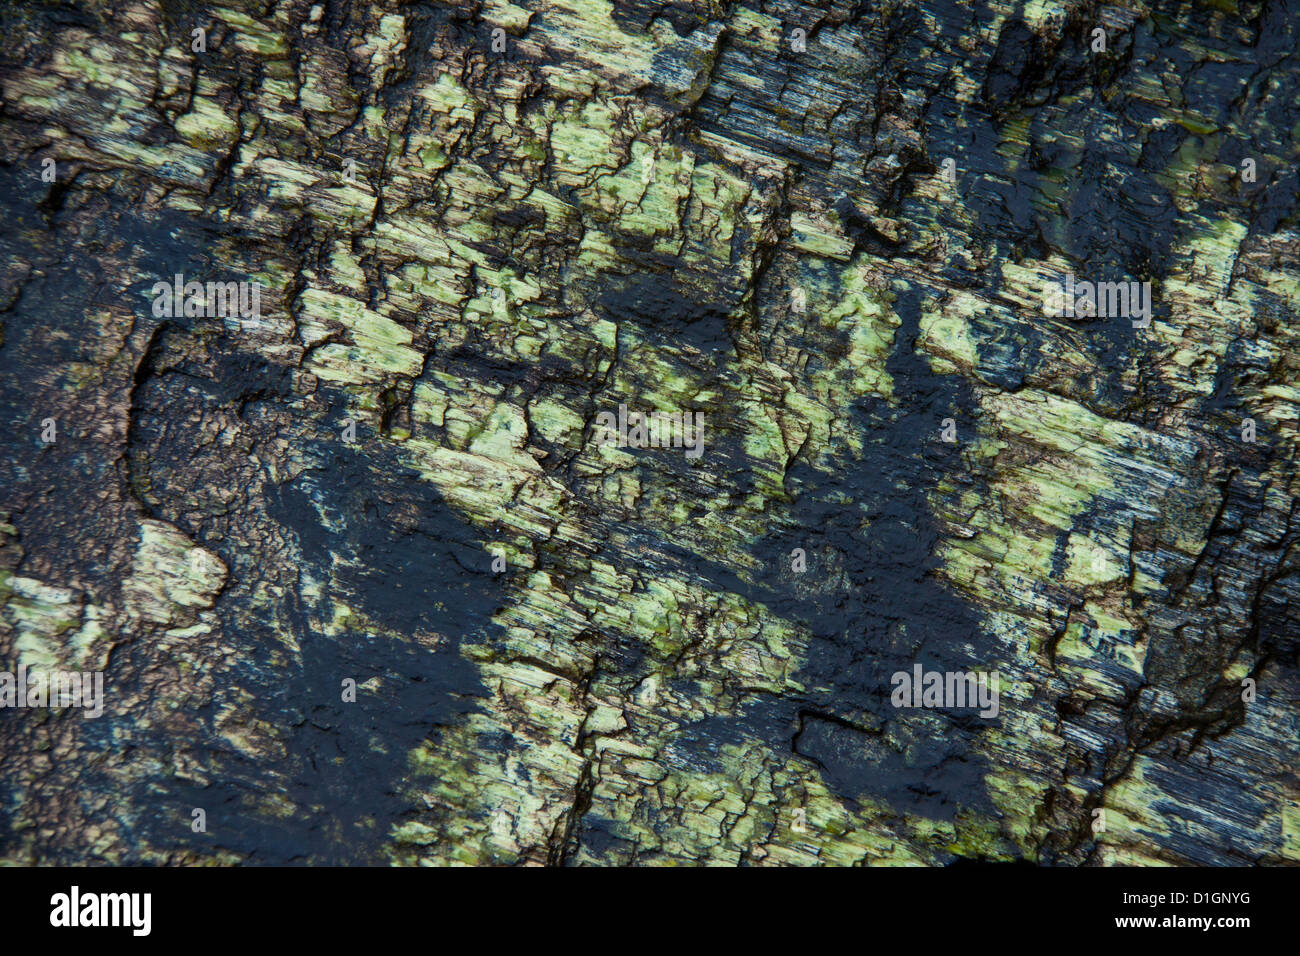 Interesting stone texture with a lot of scratches and interesting green and black colors Stock Photo